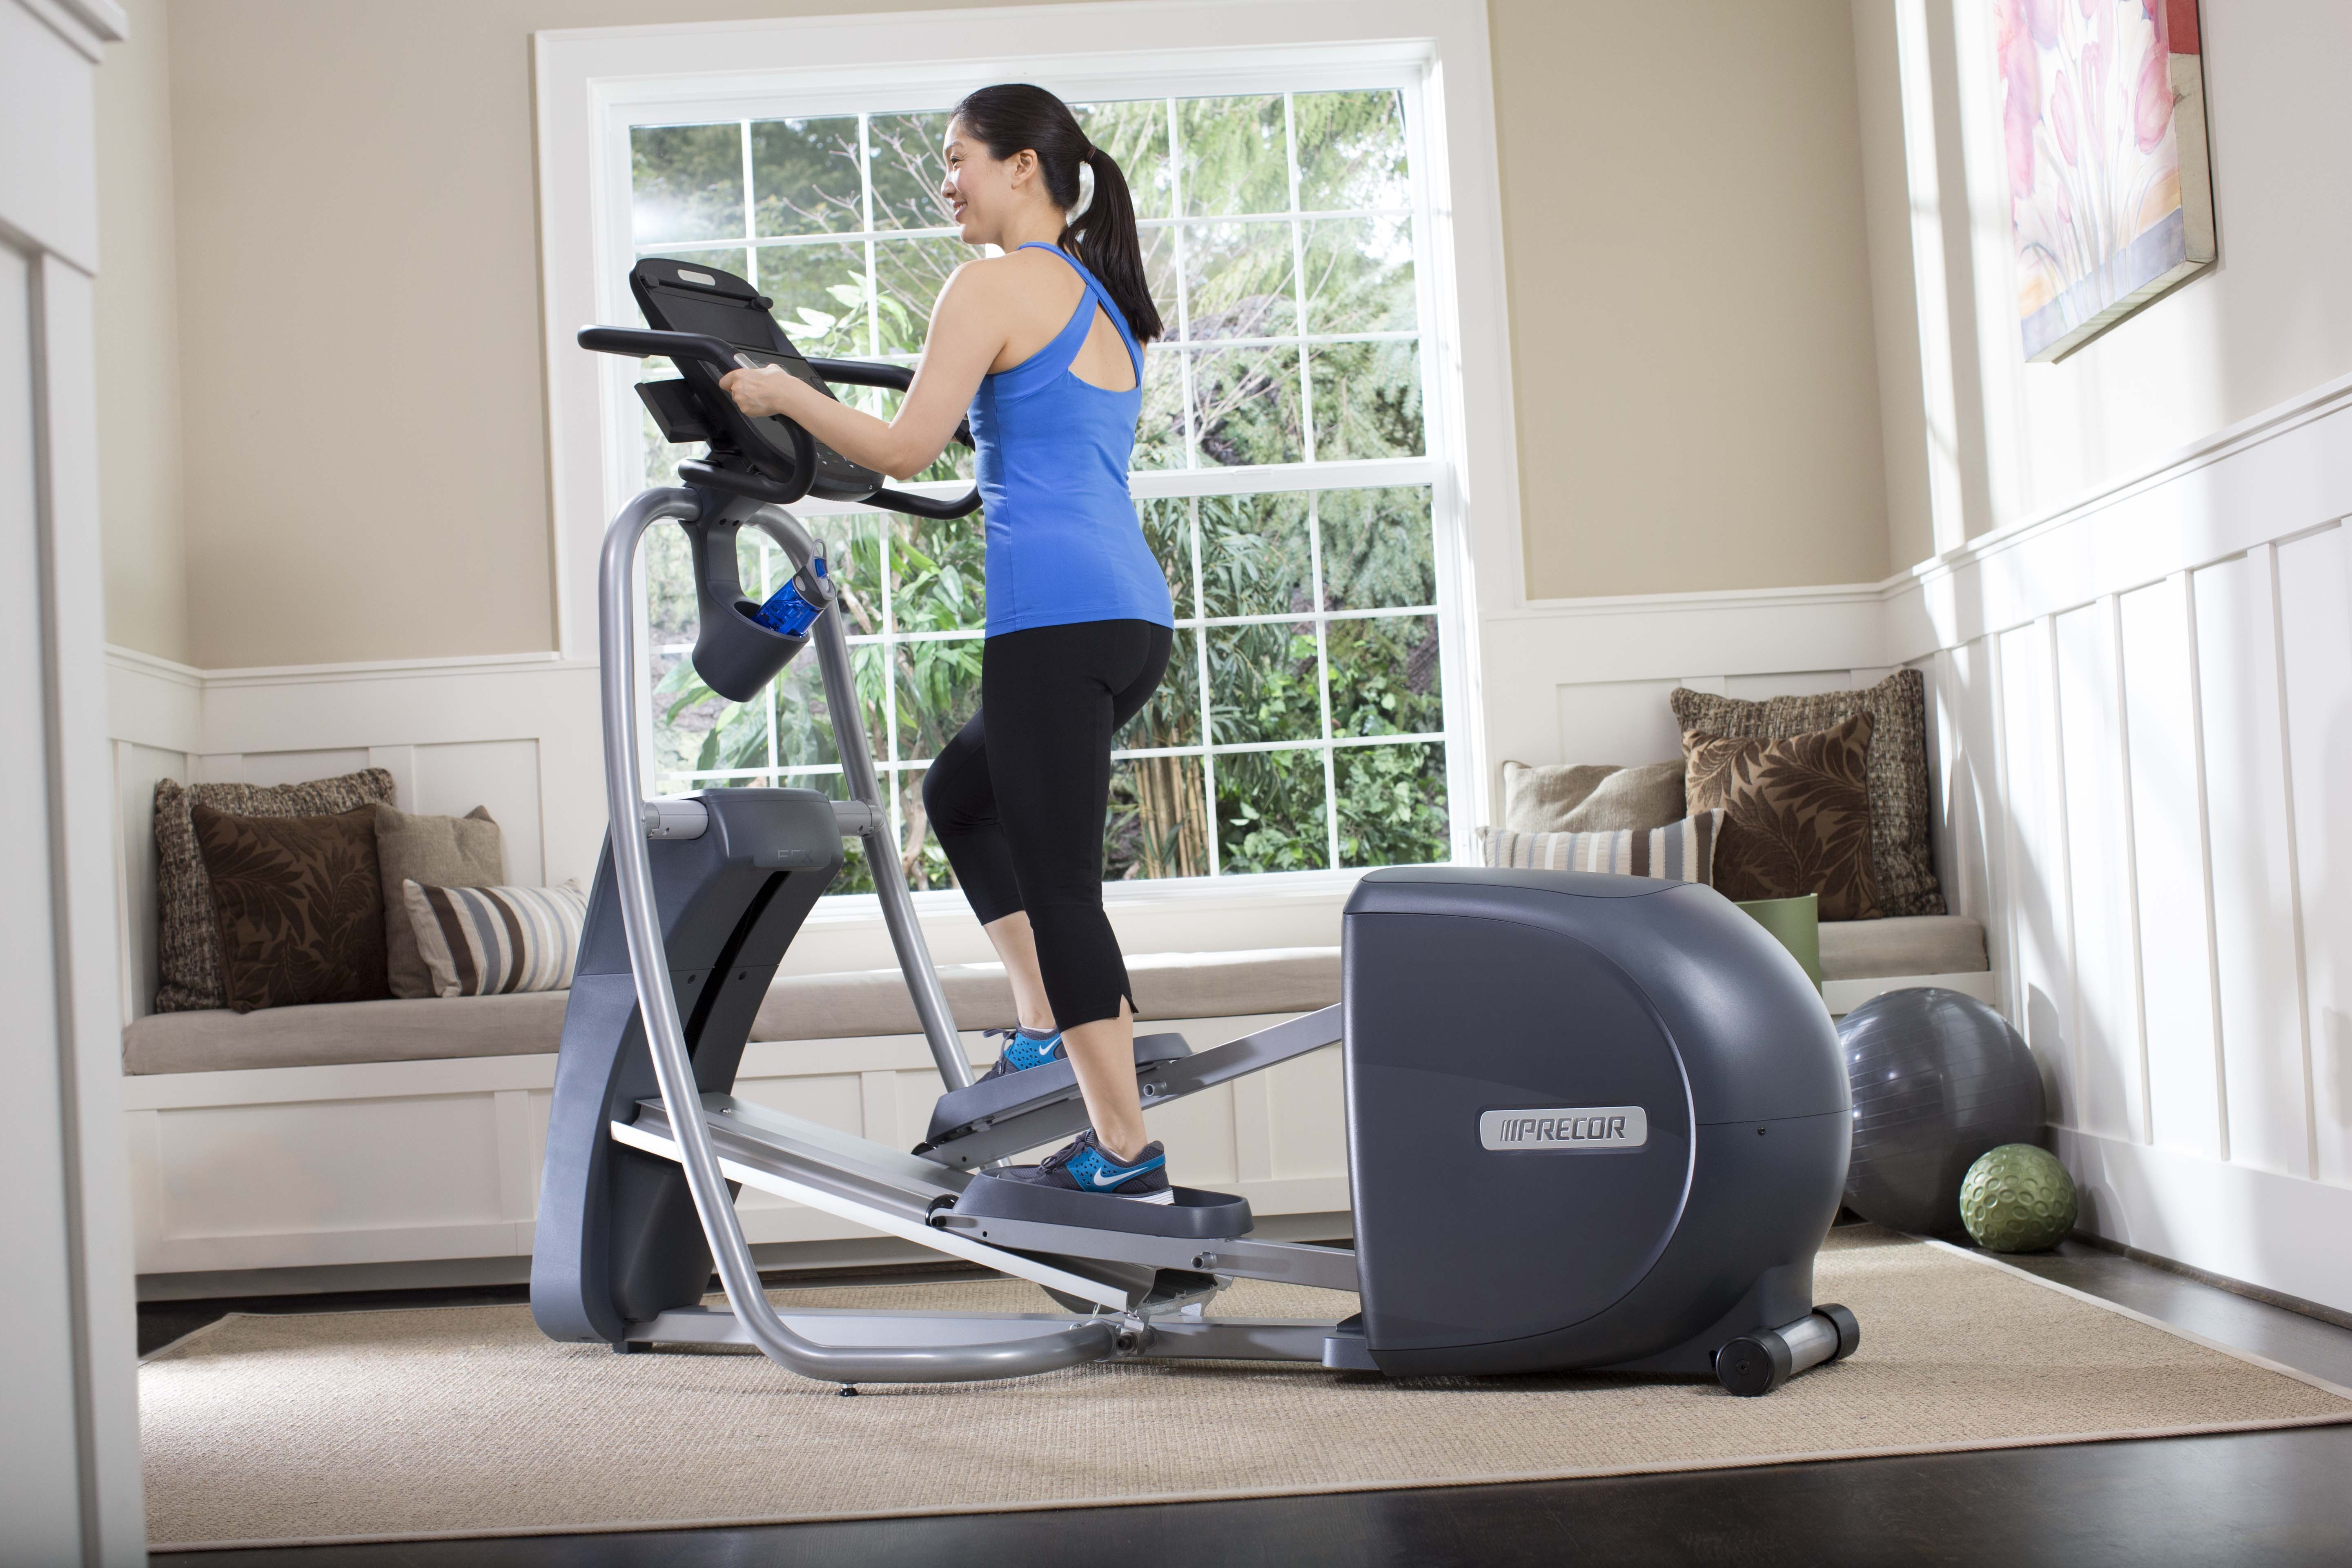 Efx precision™ series precor